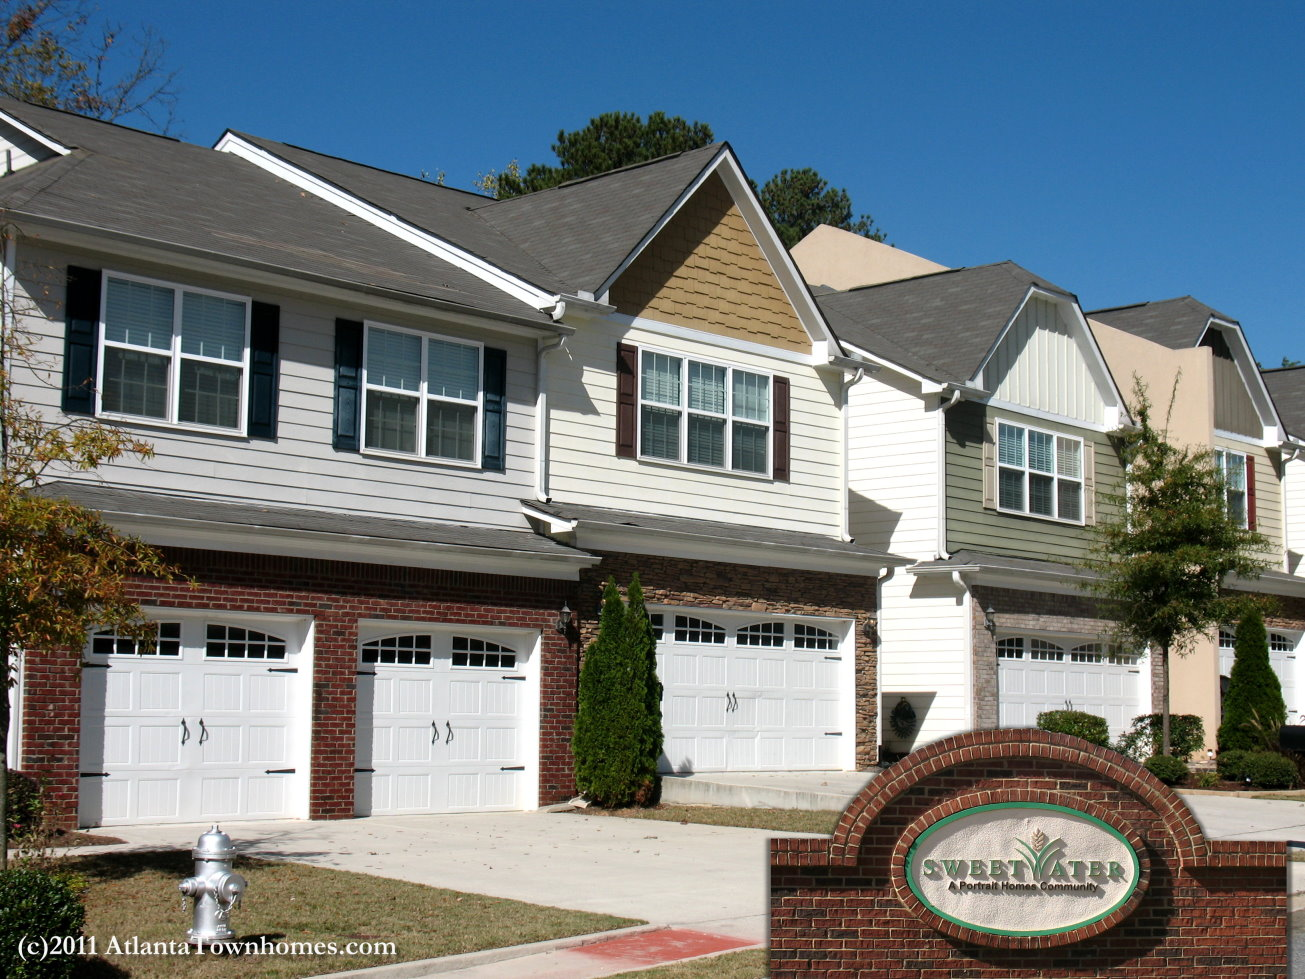 Sweetwater Townhomes in Lawrenceville GA